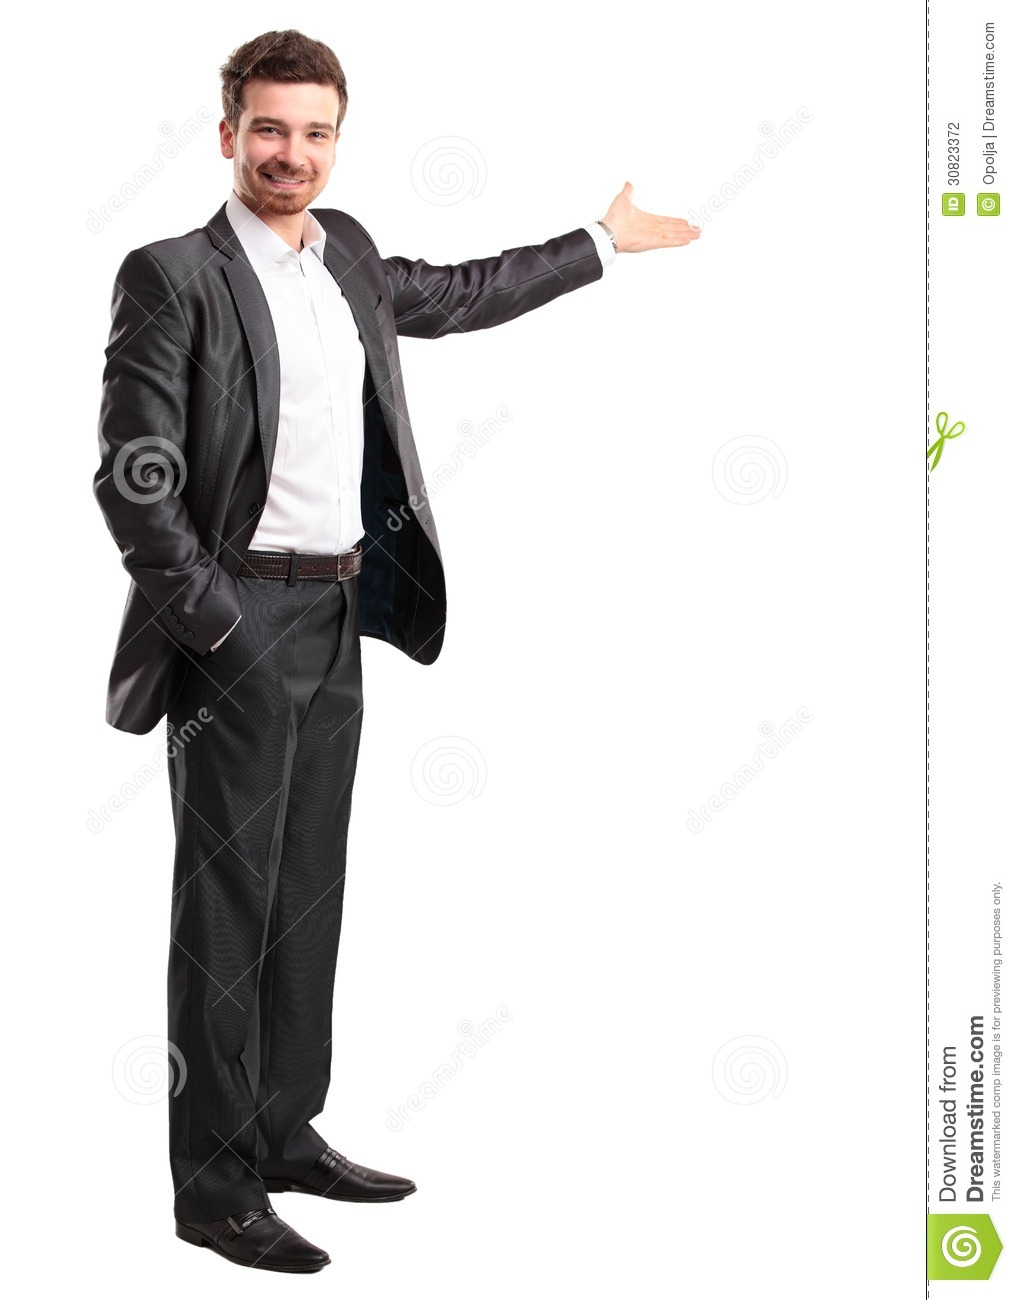 happy-business-man-presenting-showing-co